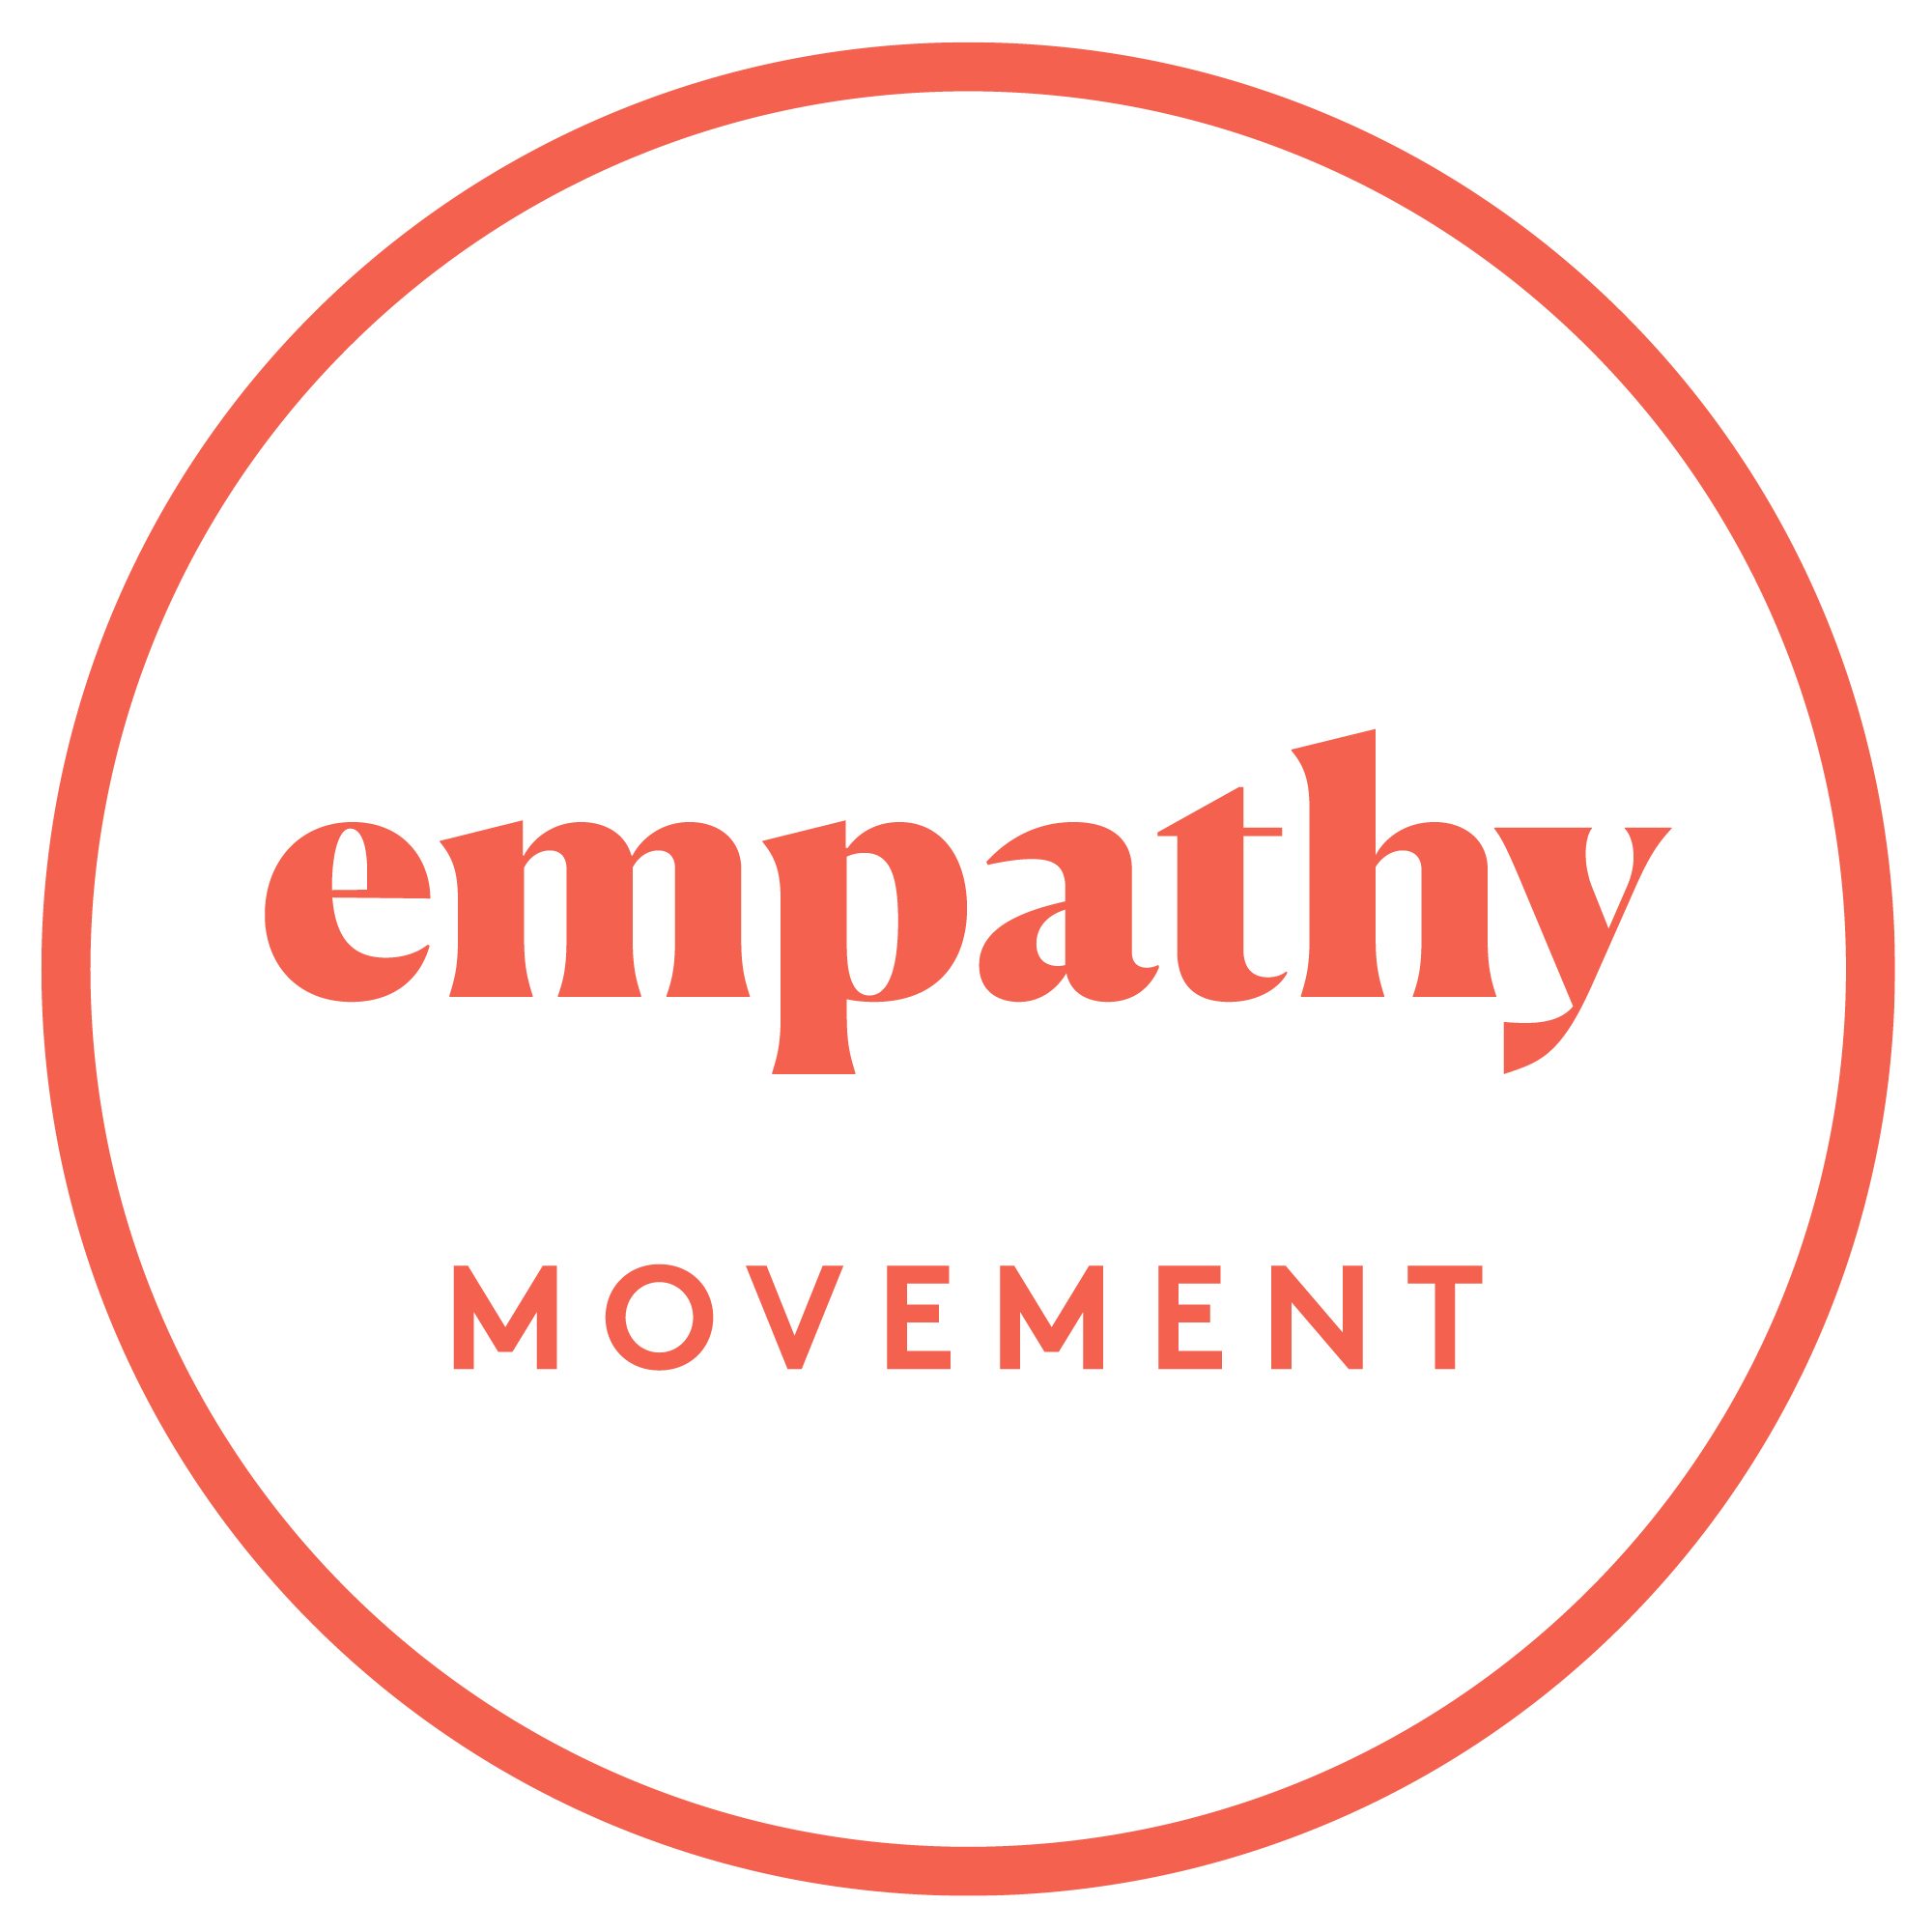 Empathy Movement